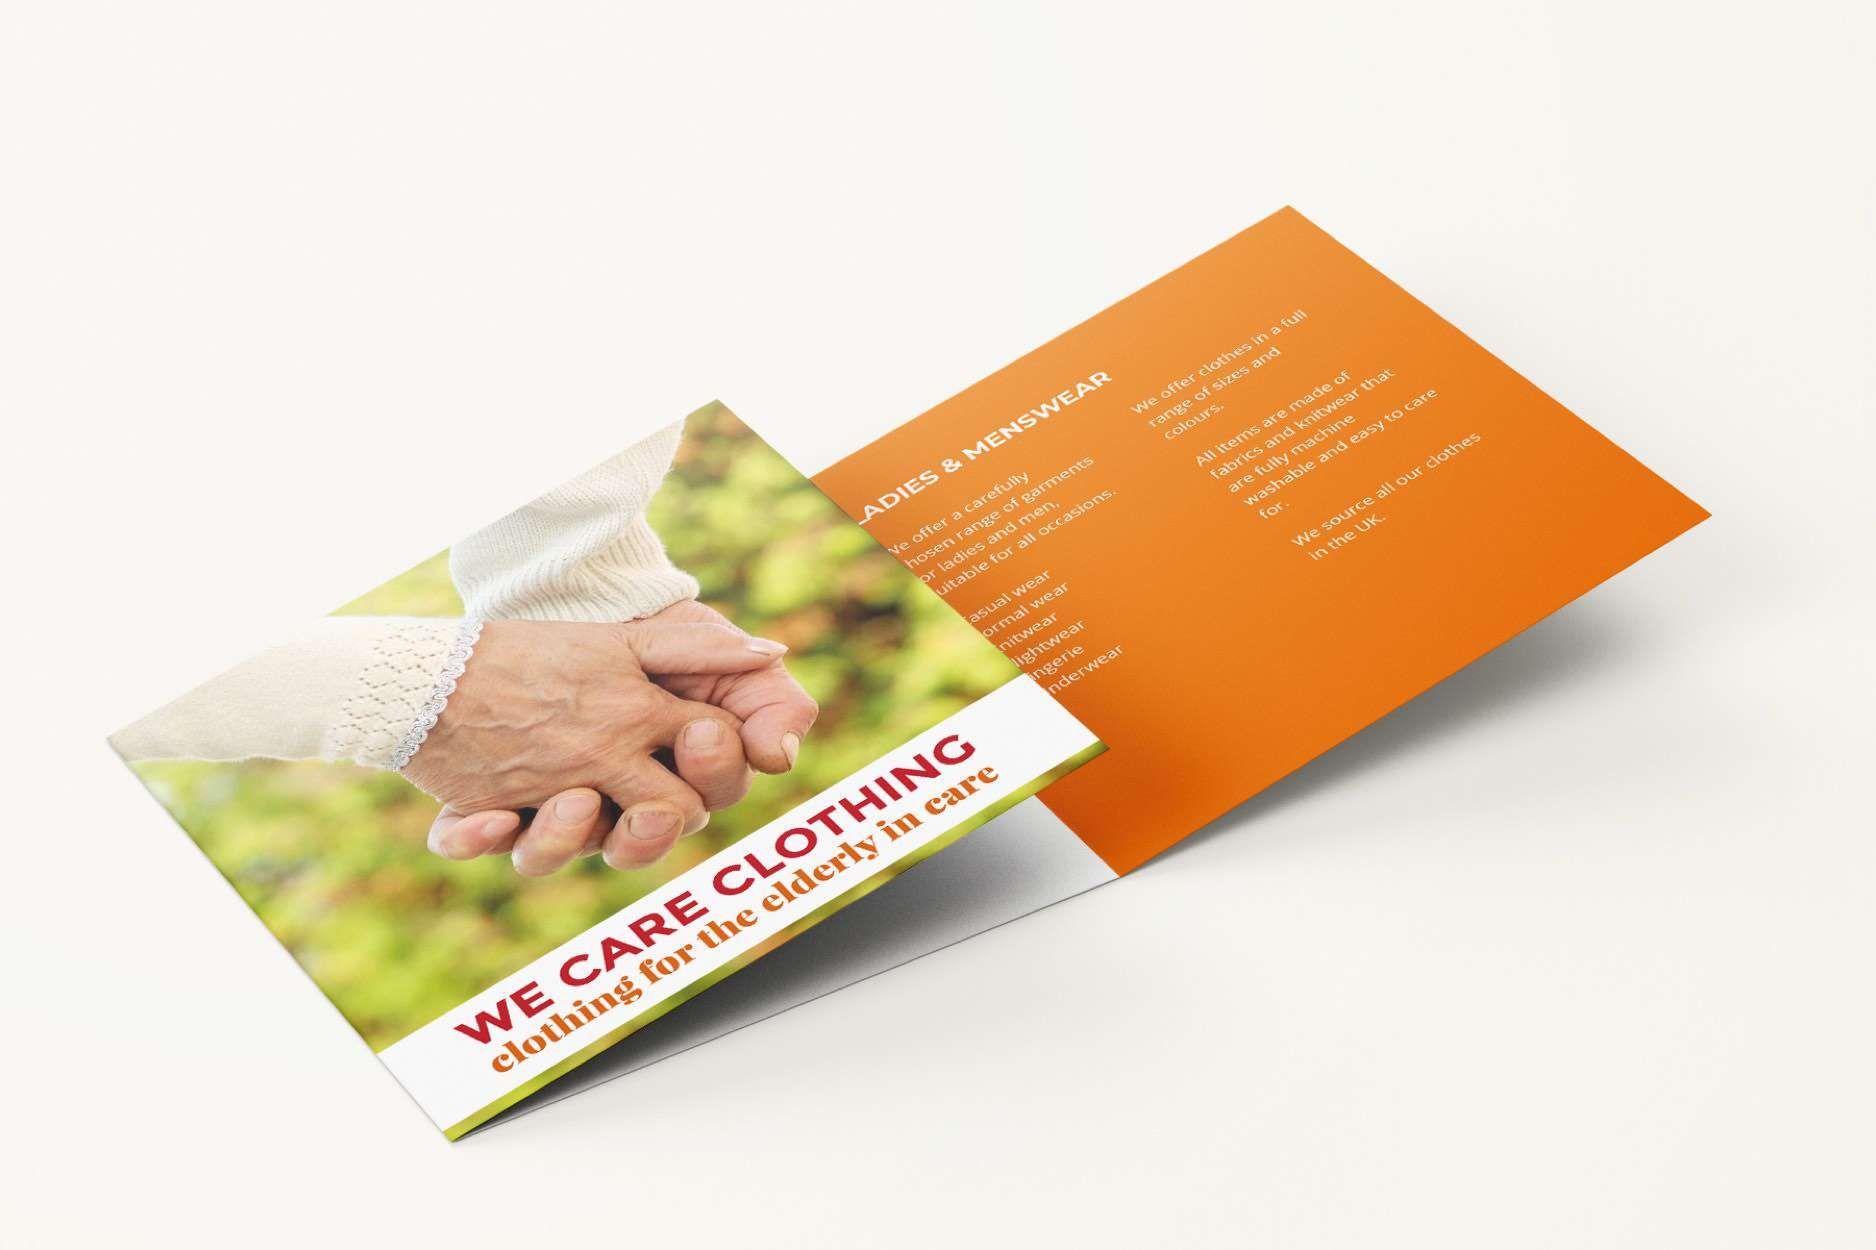 Information leaflet for We Care Clothing.